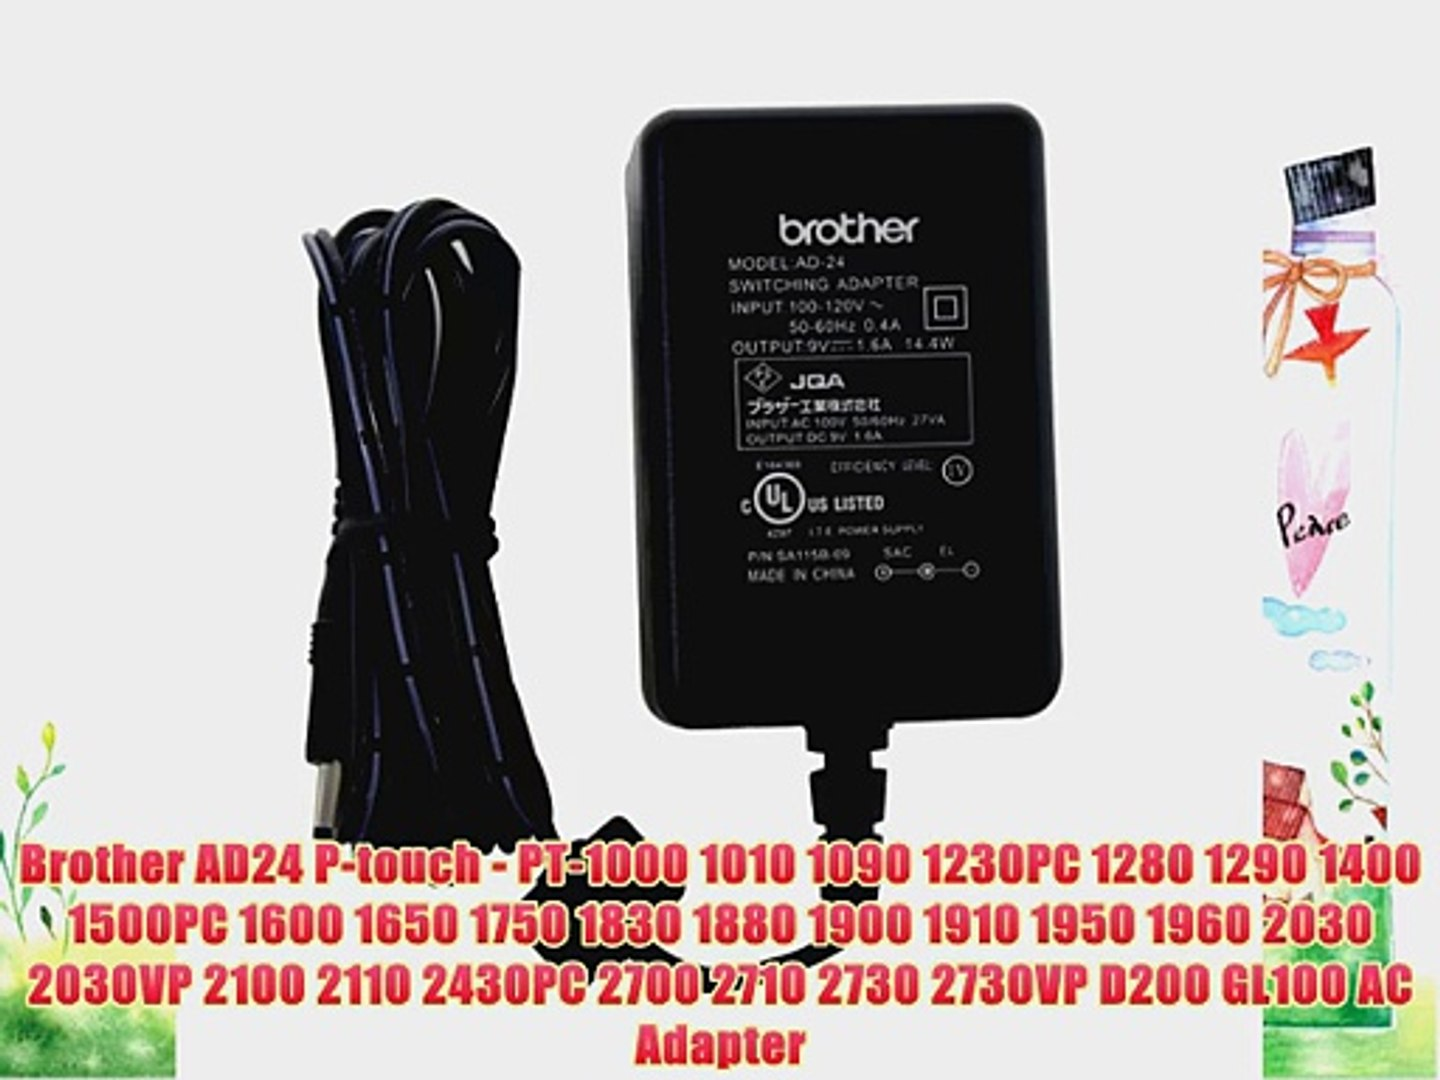 1000 1010 brother ad24 p-touch - pt-1000 1010 1090 1230pc 1280 1290